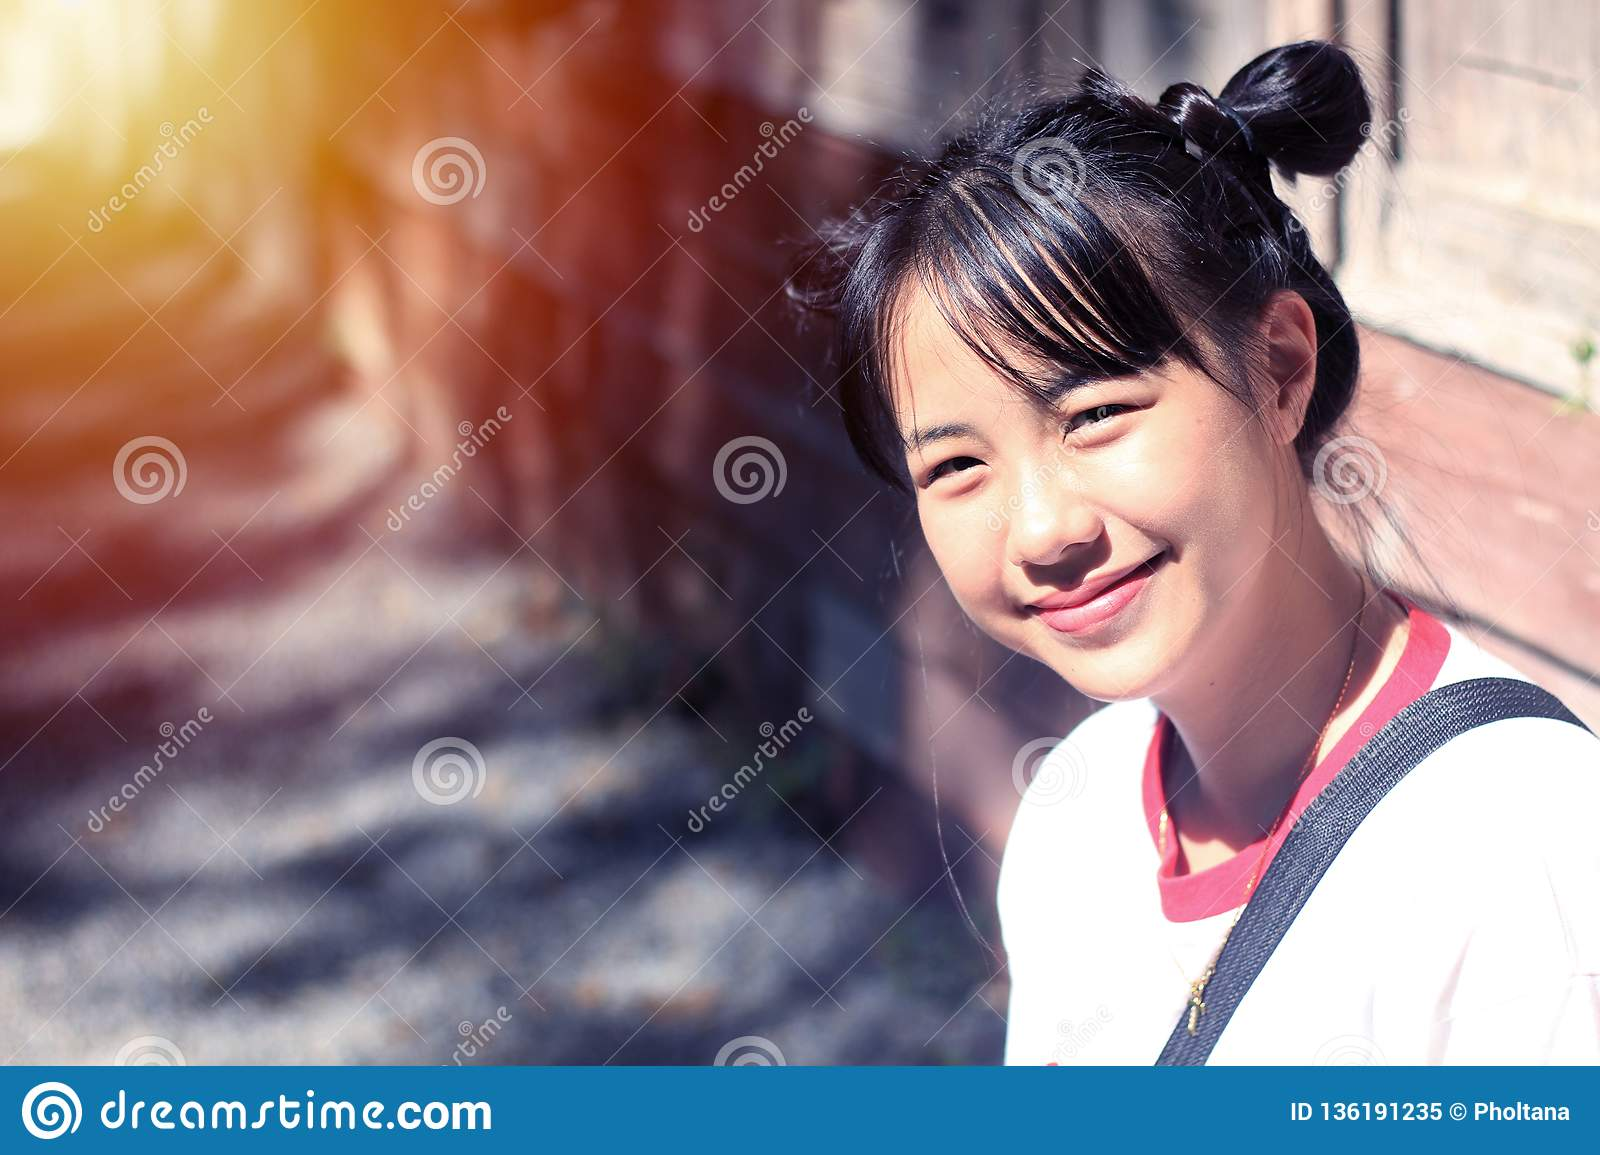 Asian teenage girls do hair tie, two pacifiers are smiling.